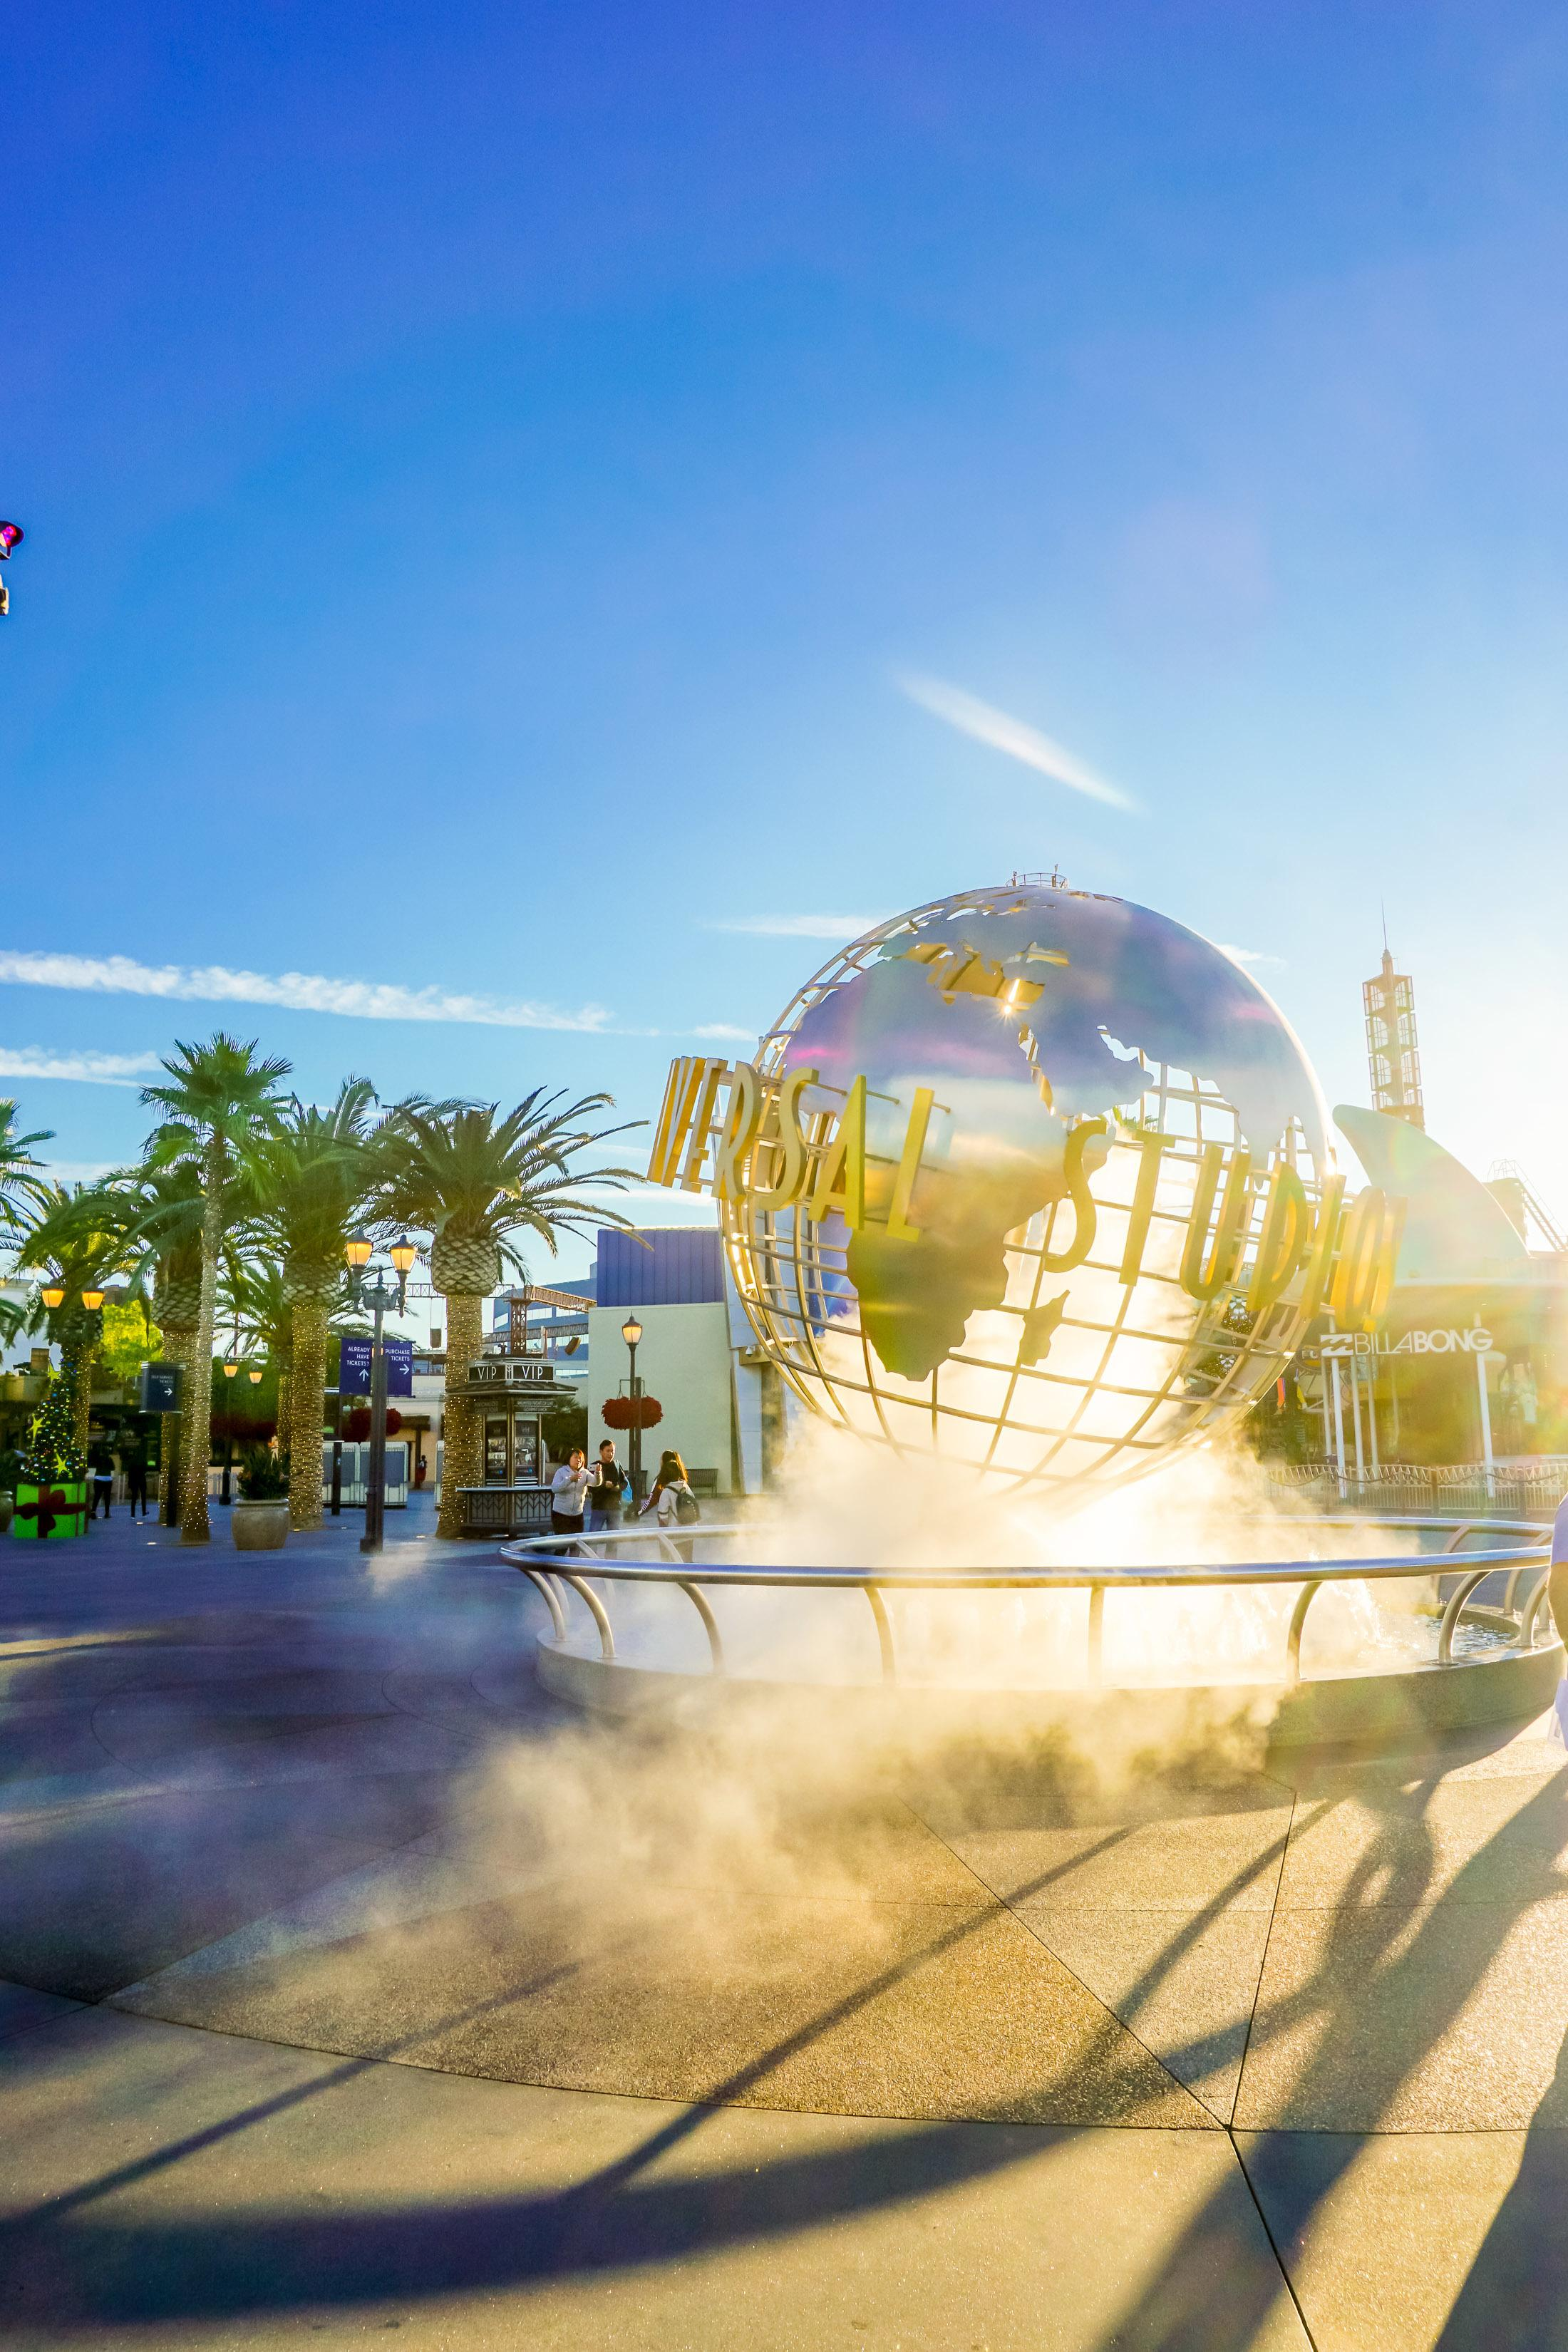 Discount Tickets to Universal Studios Hollywood